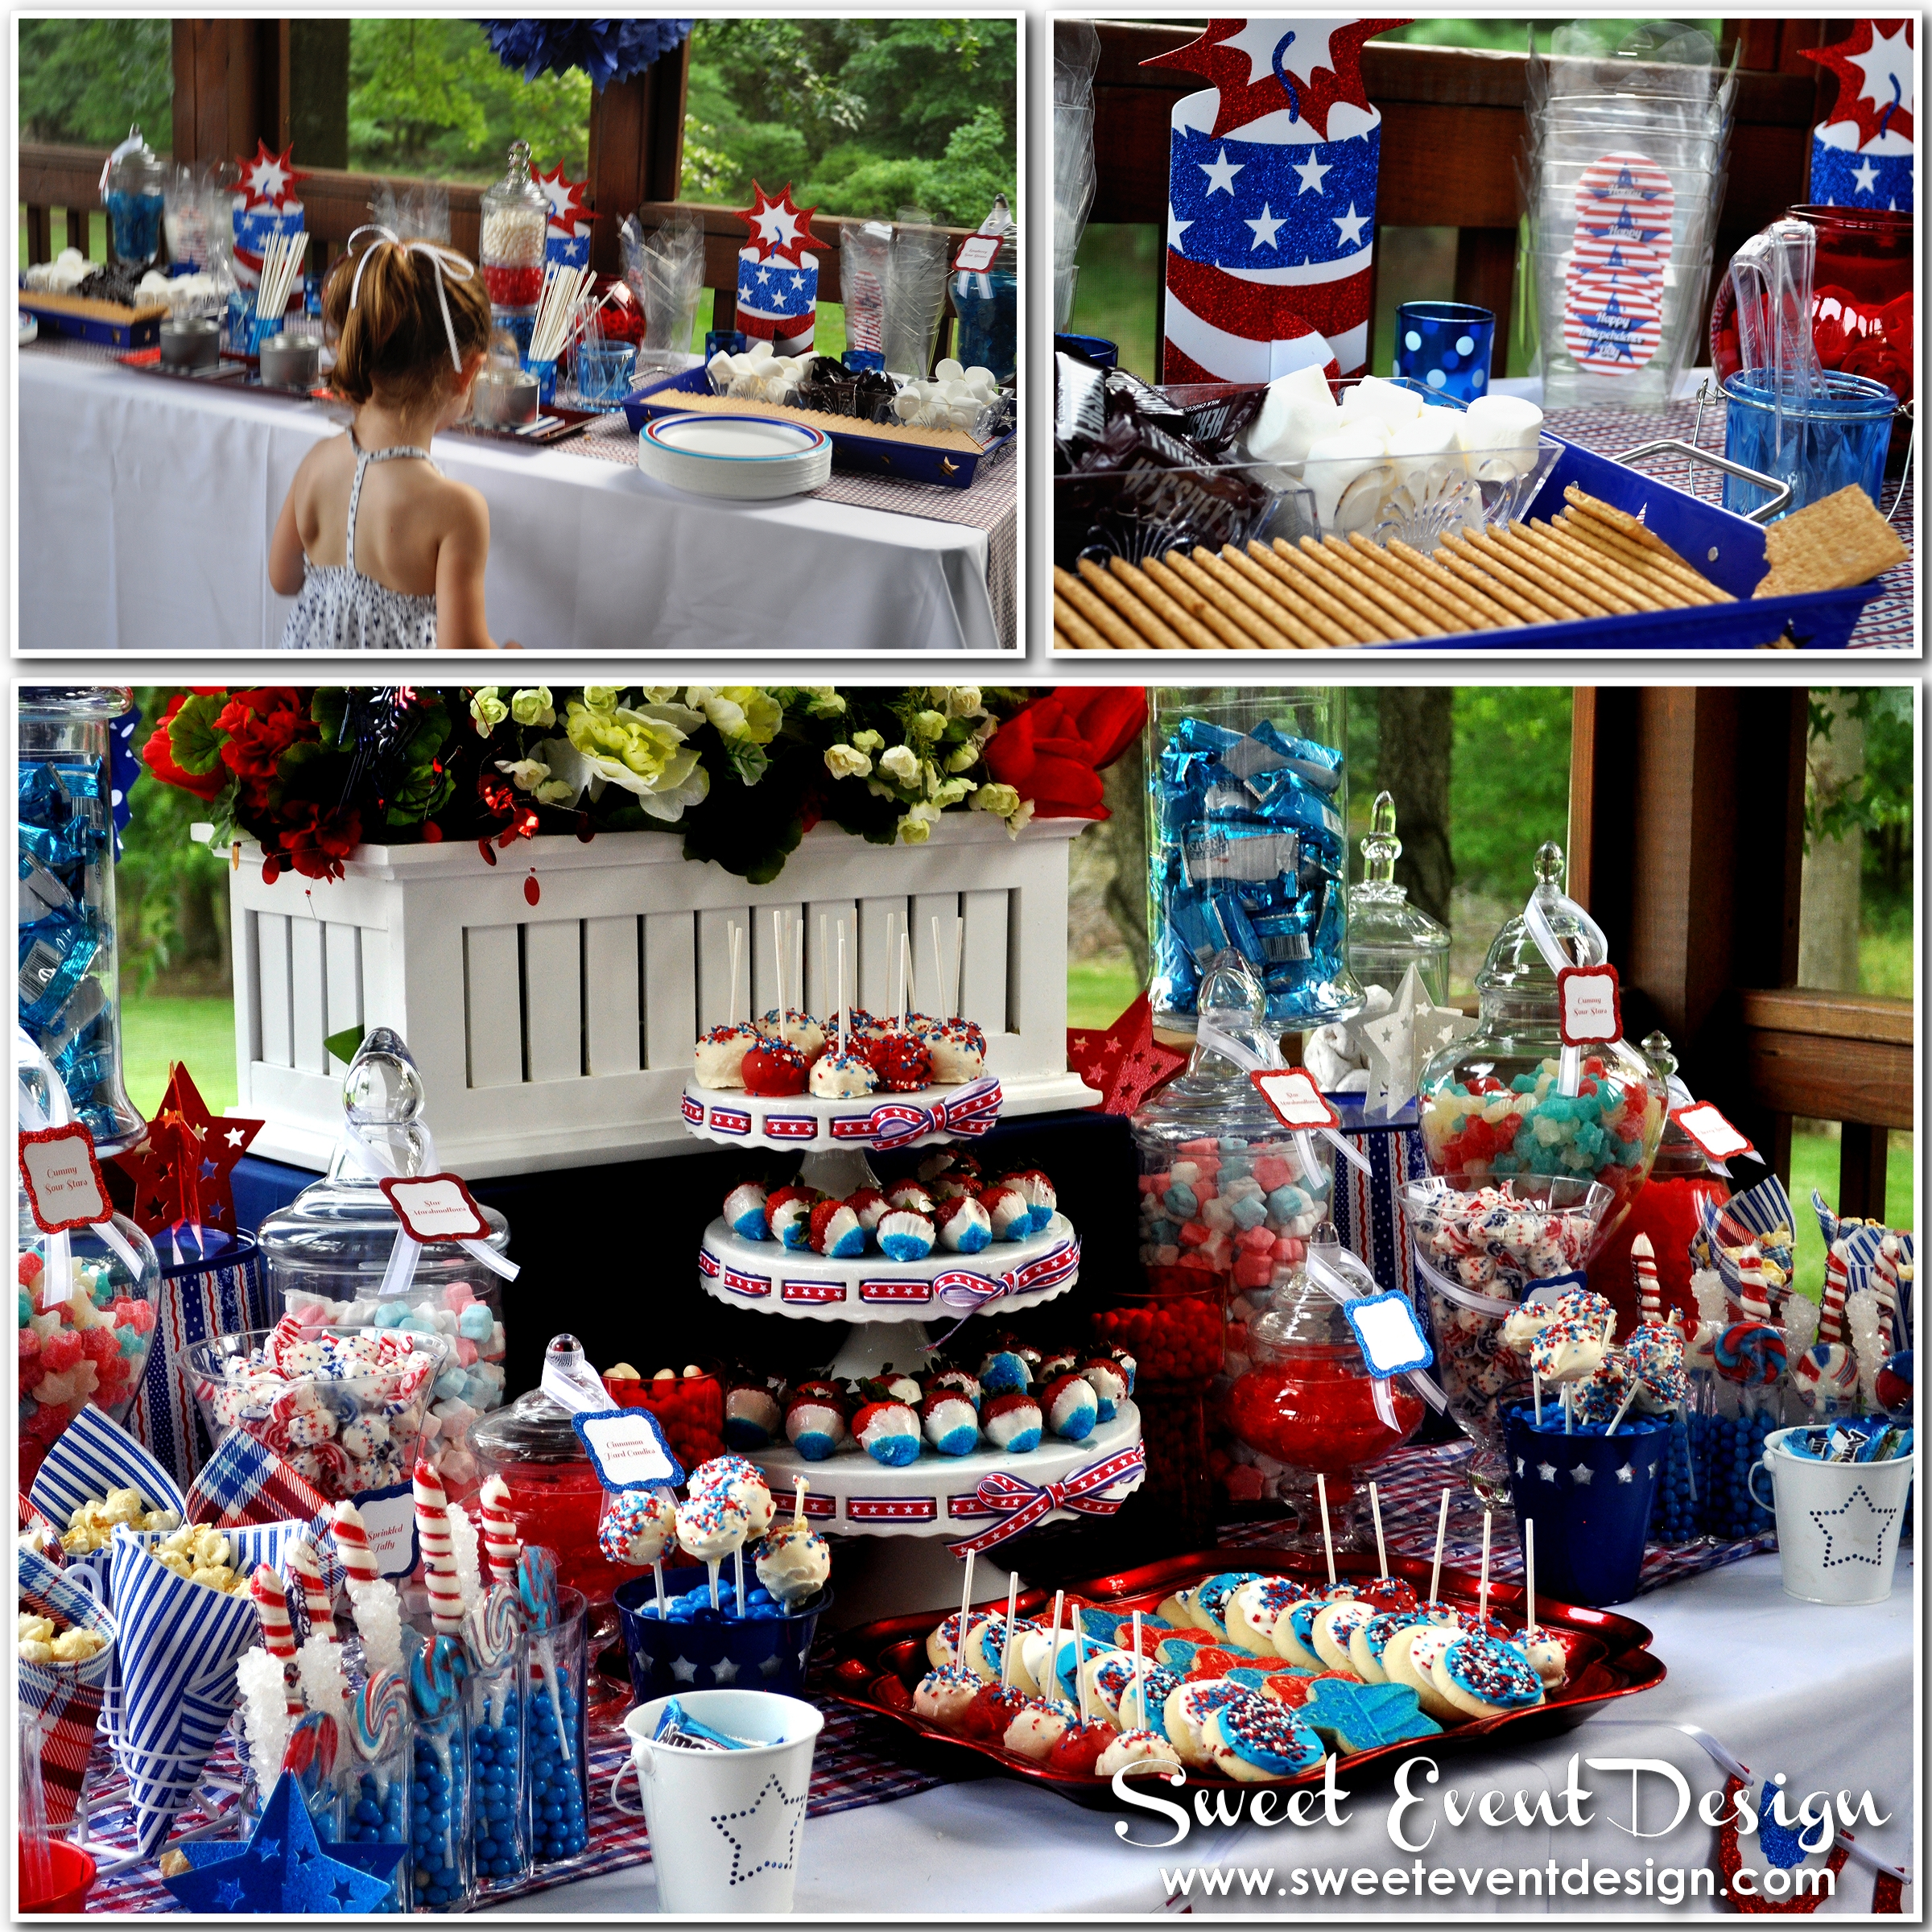 Election night red white and blue candy buffet